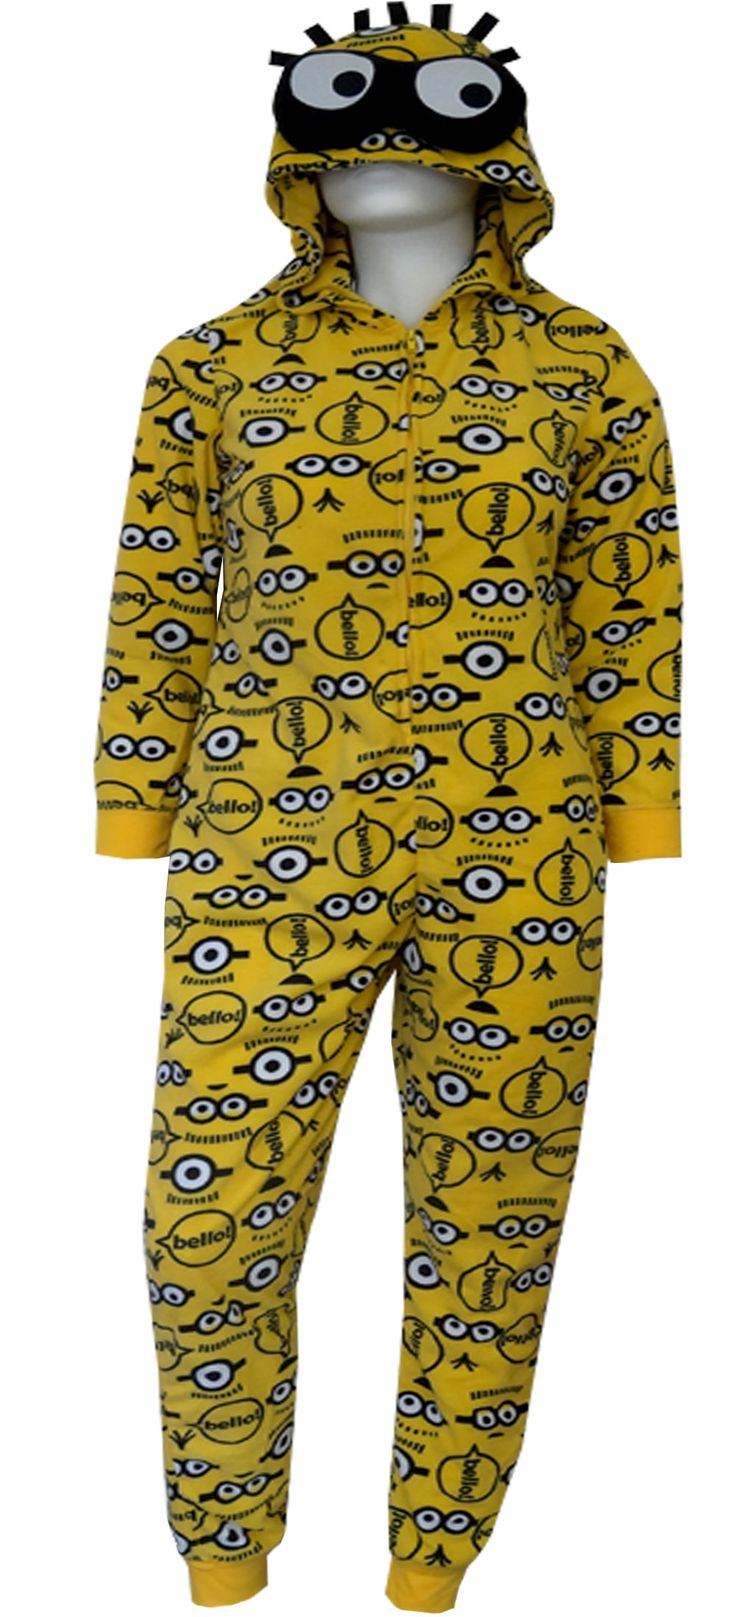 Webundies Com Despicable Me Minion Hooded Onesie Pajama